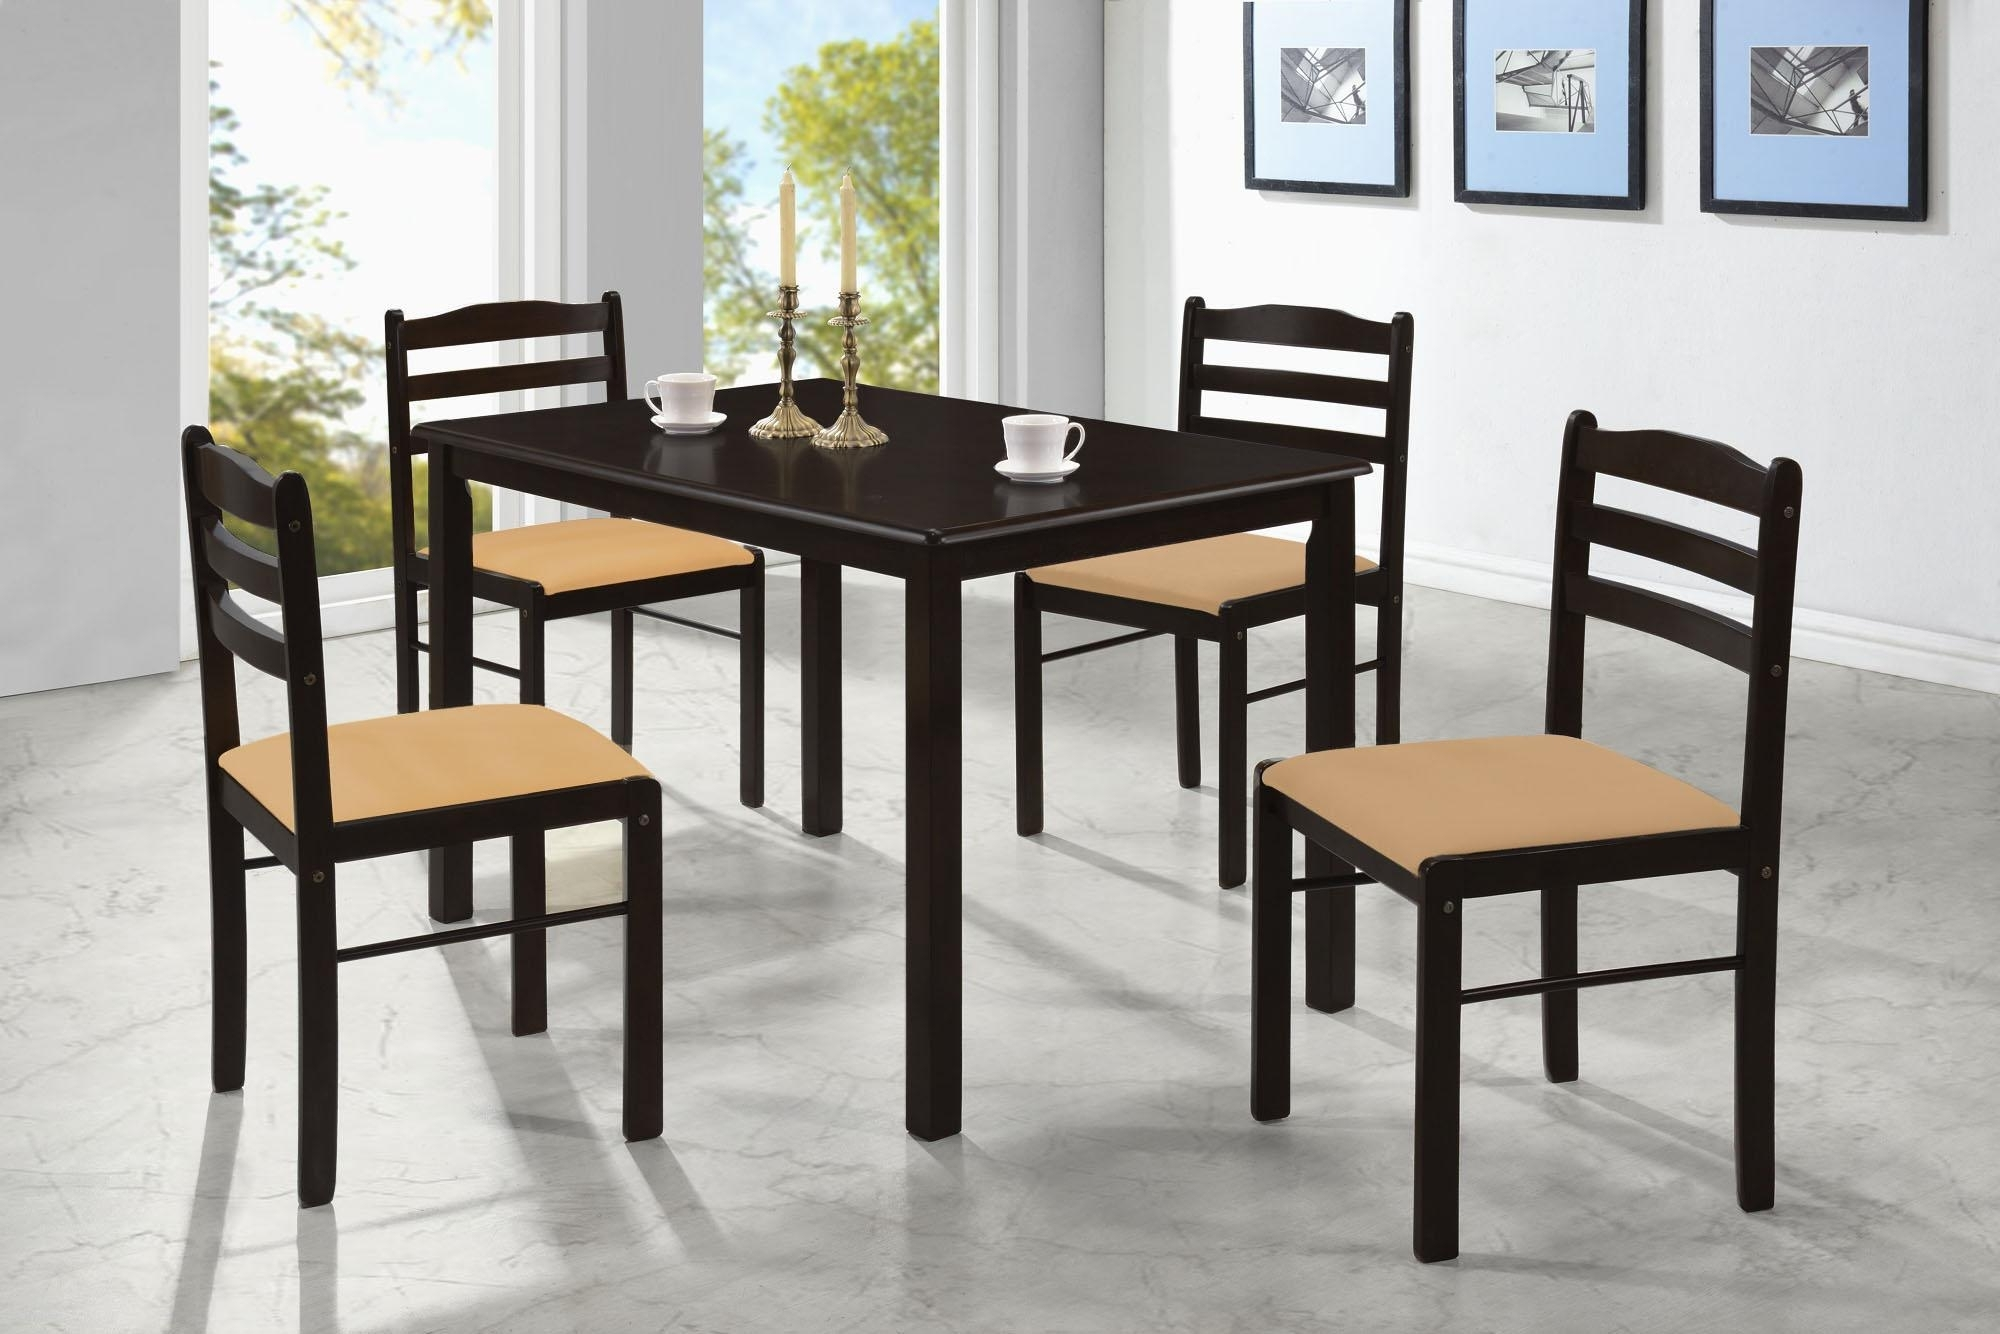 Dining Tables Pertaining To Newest Dining Table For Sale – Dining Tables Prices, Brands & Review In (Gallery 16 of 25)